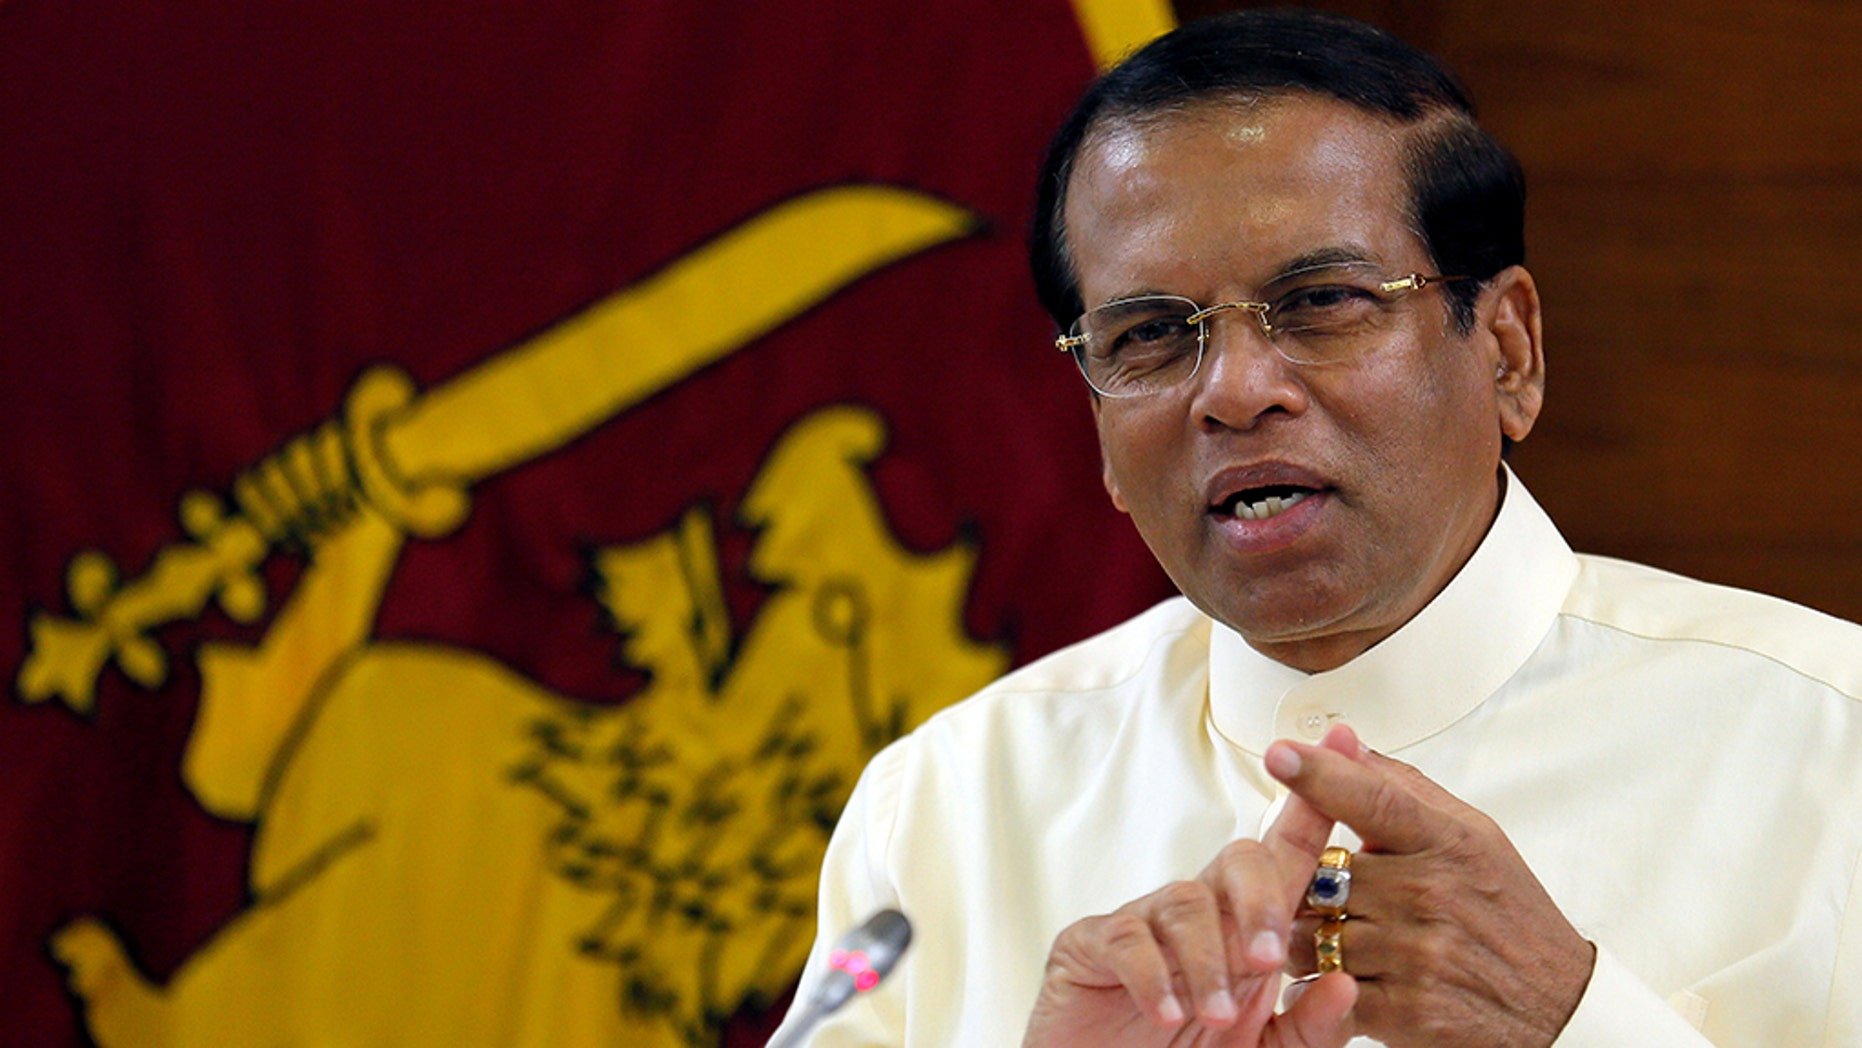 Sri Lanka's President Maithripala Sirisena speaks during a assembly with Foreign Correspondents Association during his chateau in Colombo, Sri Lanka, in Nov 2018.